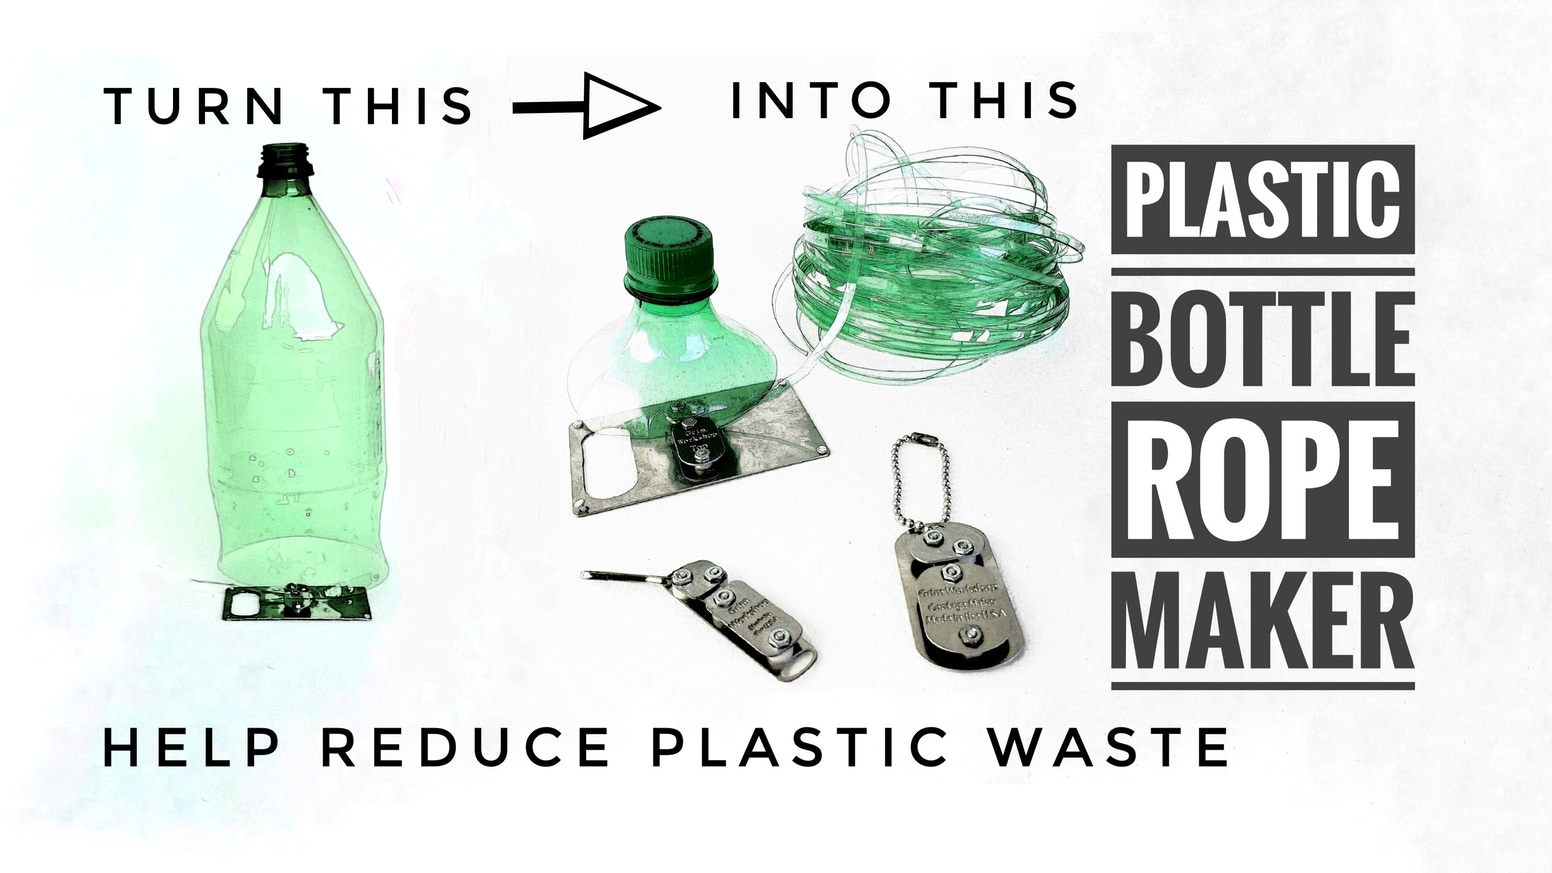 This pocket sized tool turns a plastic bottle into over 50 feet of incredibly strong rope keeping plastic bottles out of landfills